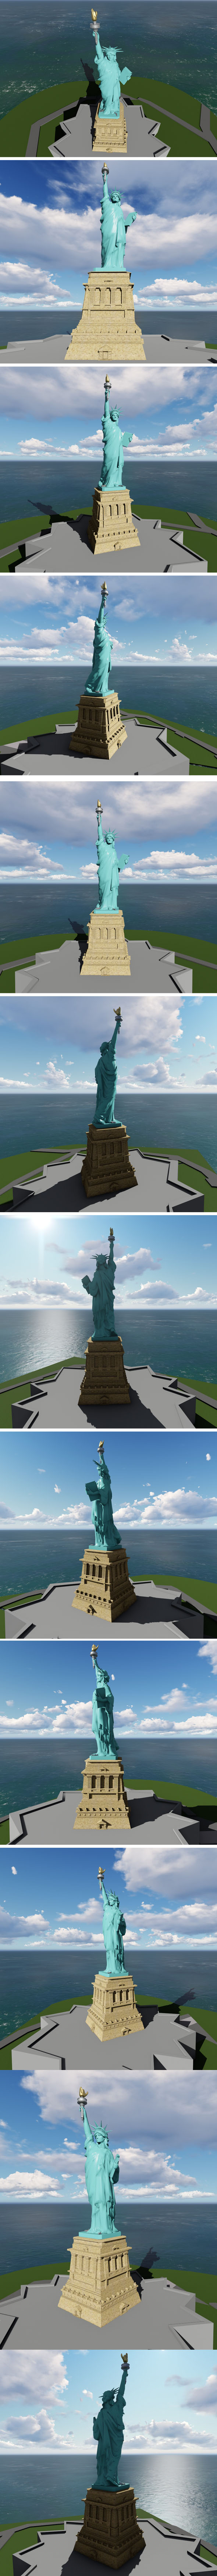 America's MONUMENT OF LIBERTY v2 - 3DOcean Item for Sale